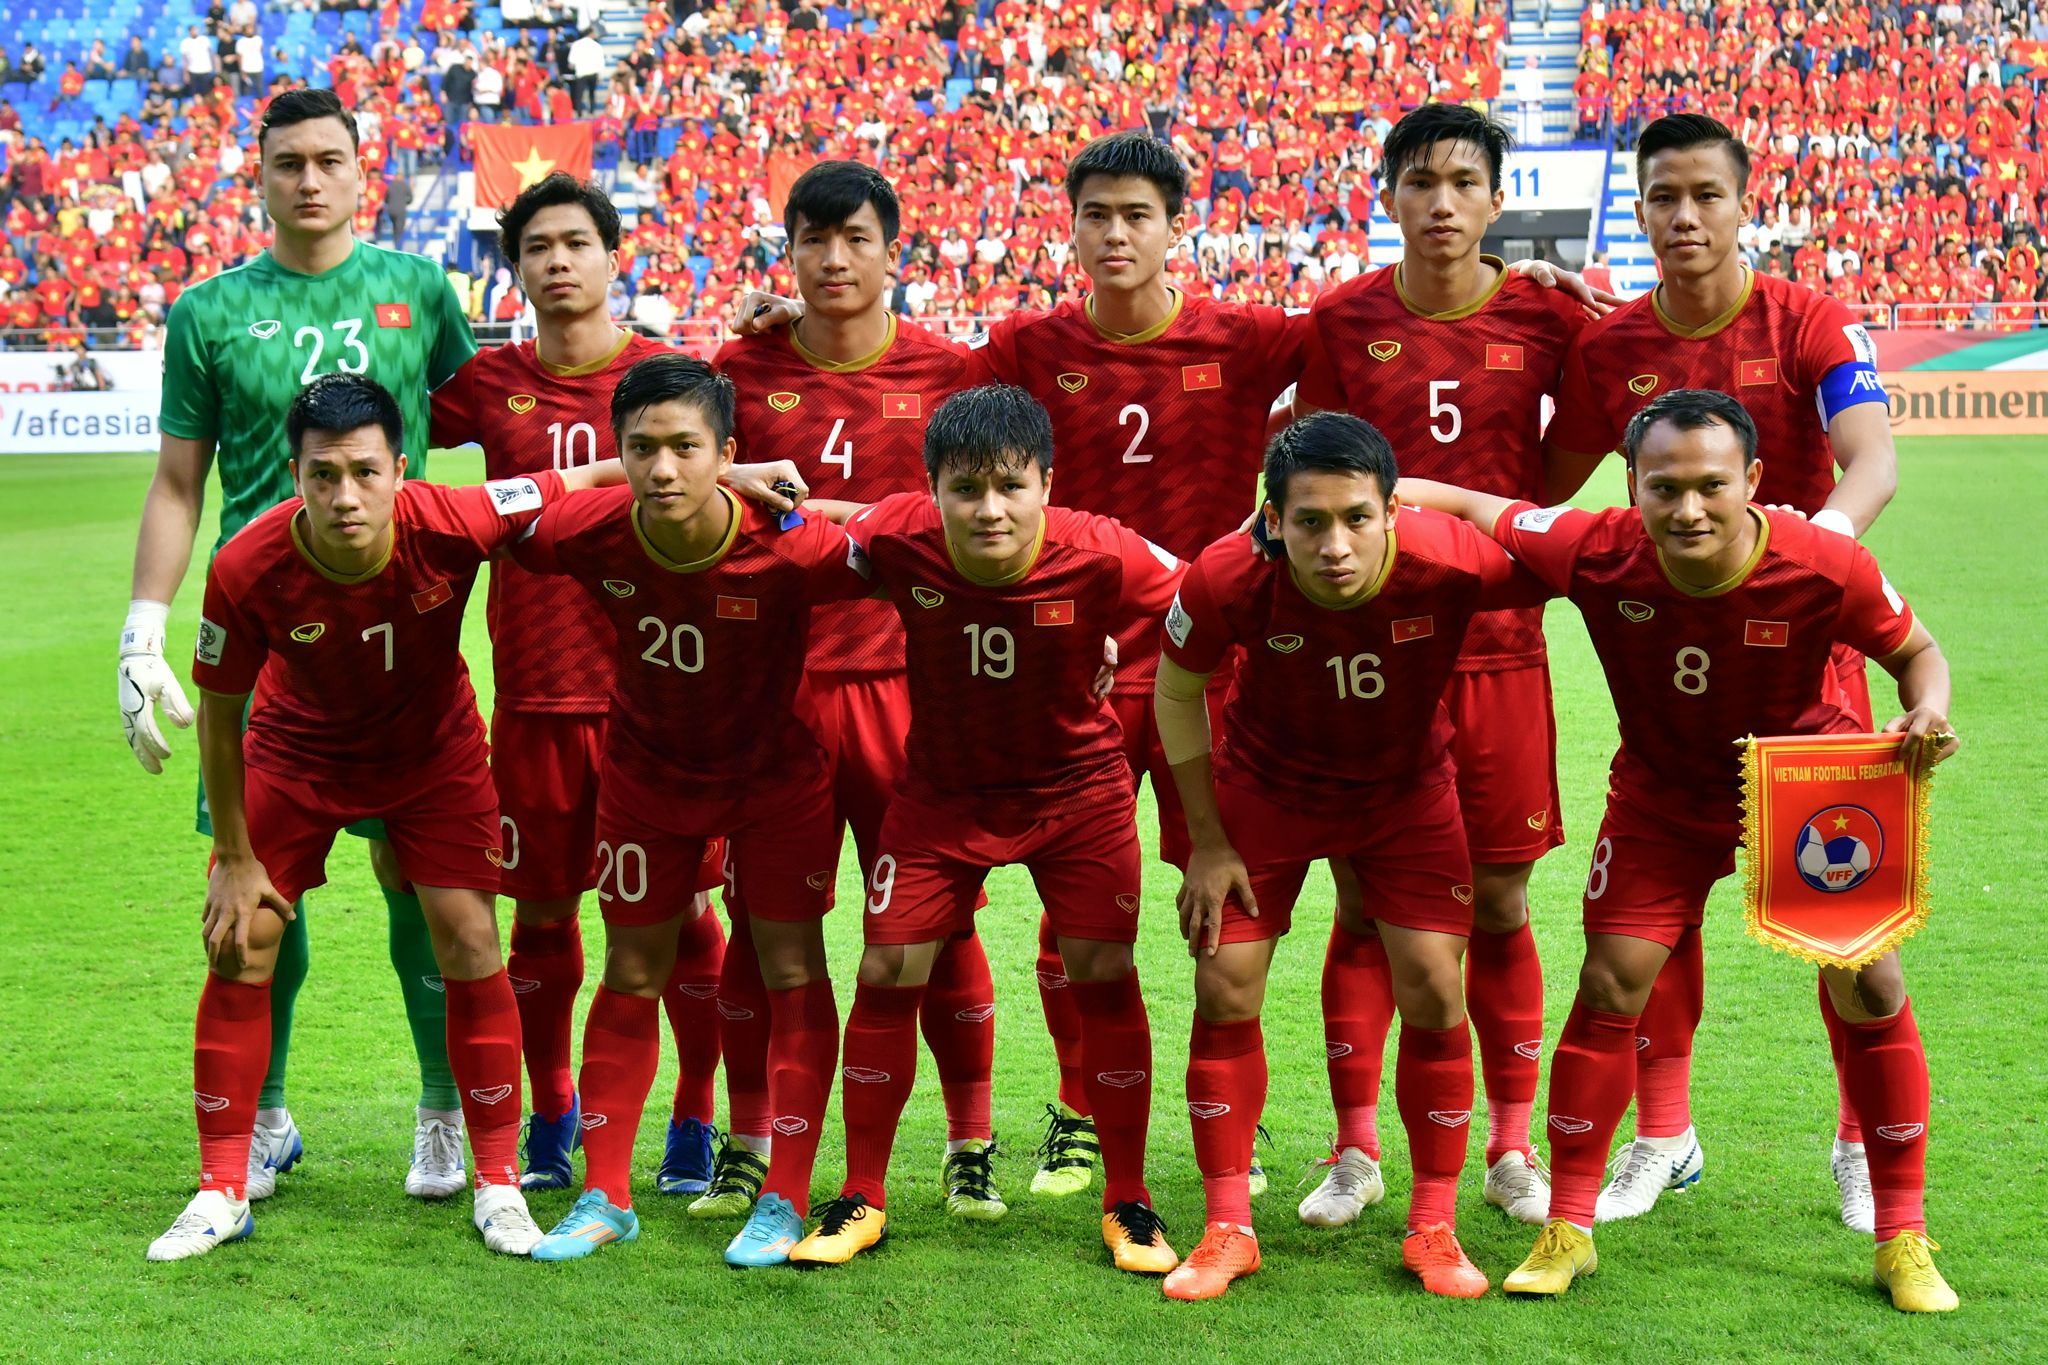 Vietnam is aiming for a place in the 2026 World Cup